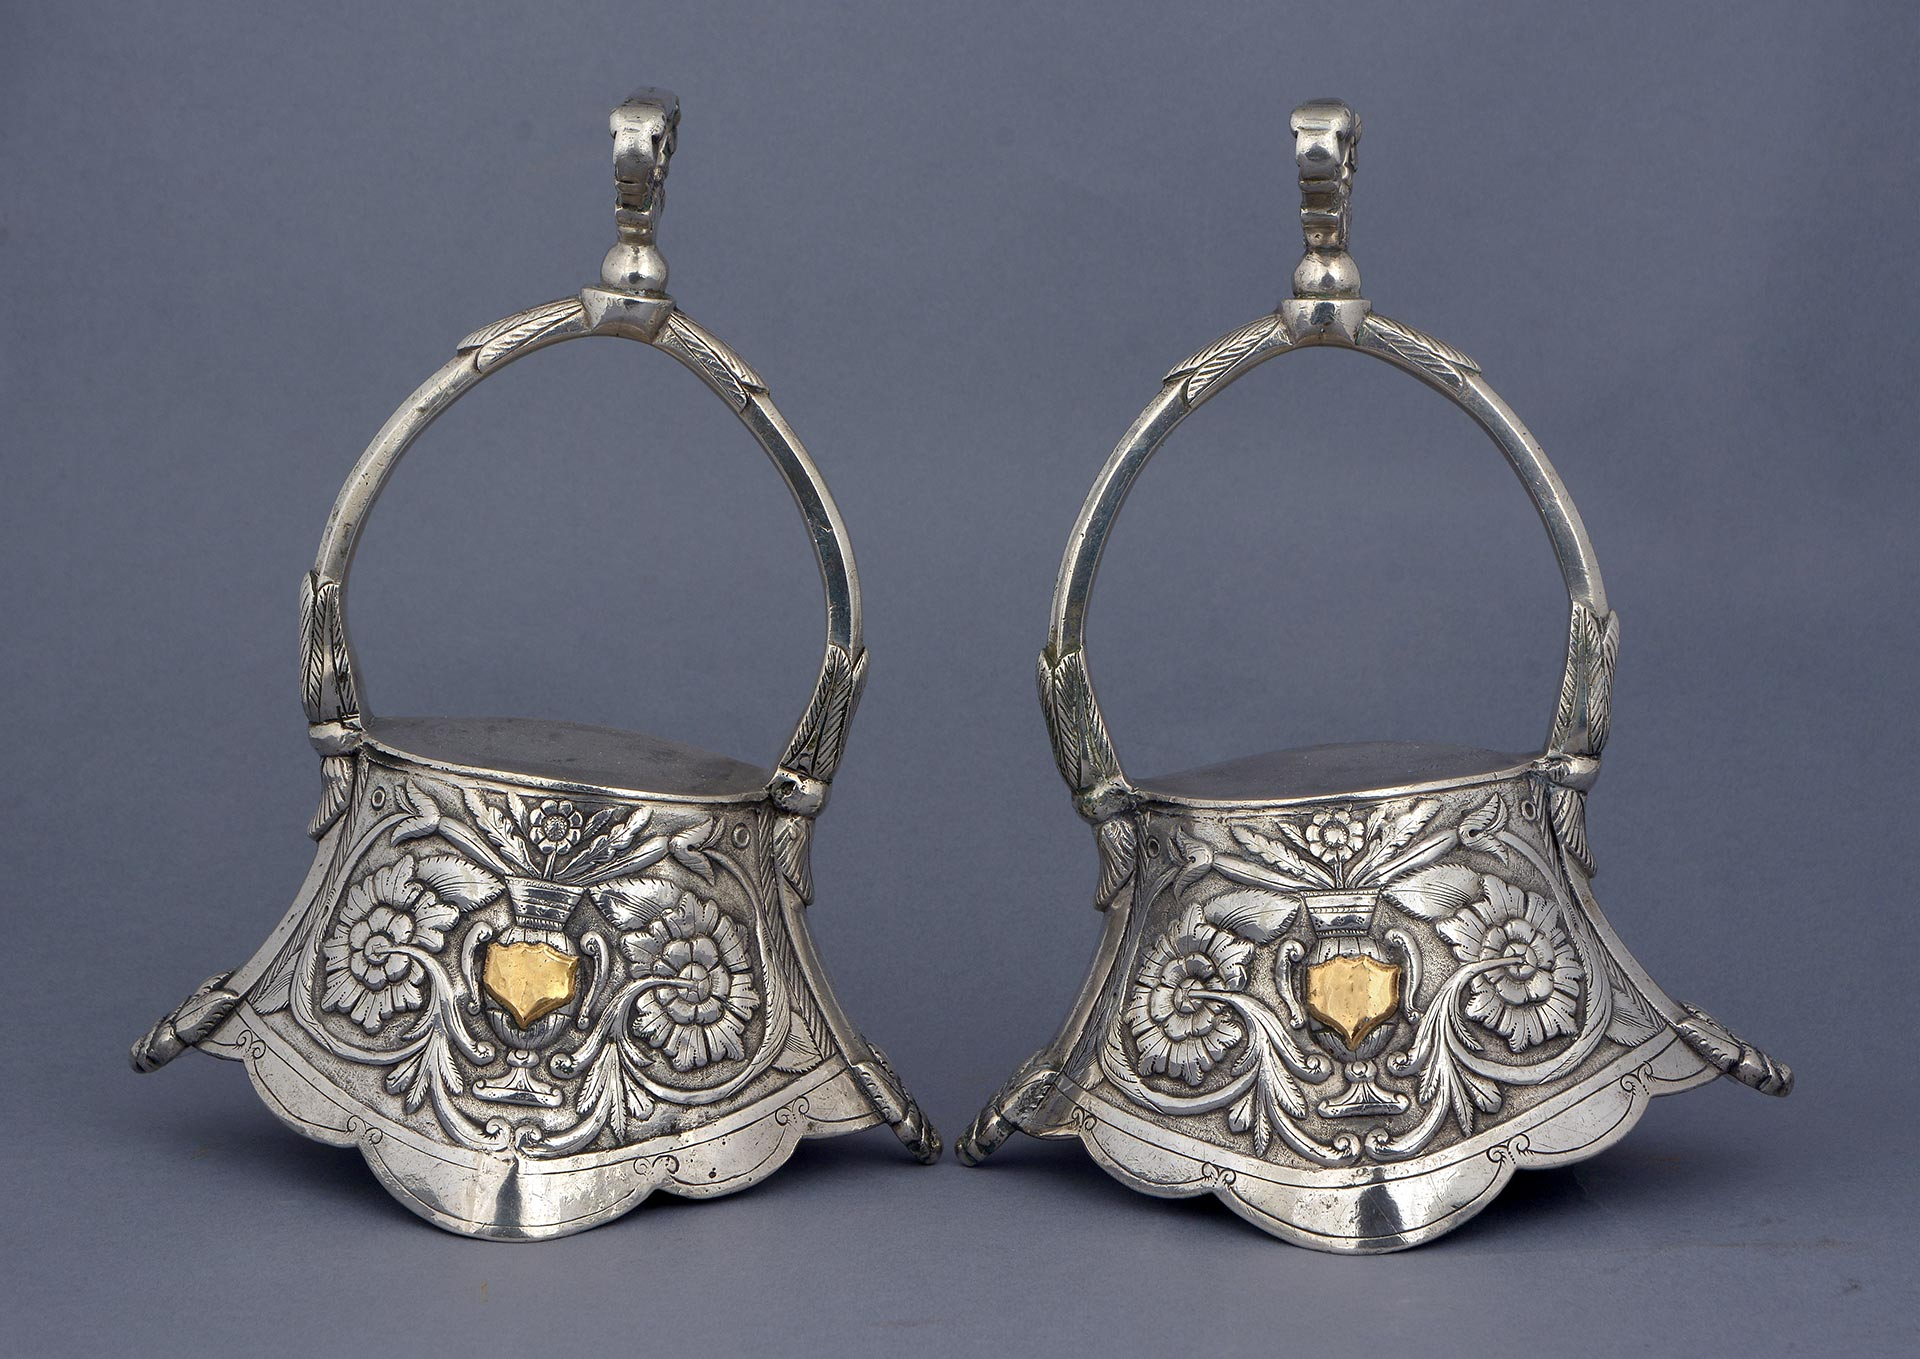 PAIR OF PARCEL-GILT SILVER AND GOLD BELL STIRRUPS